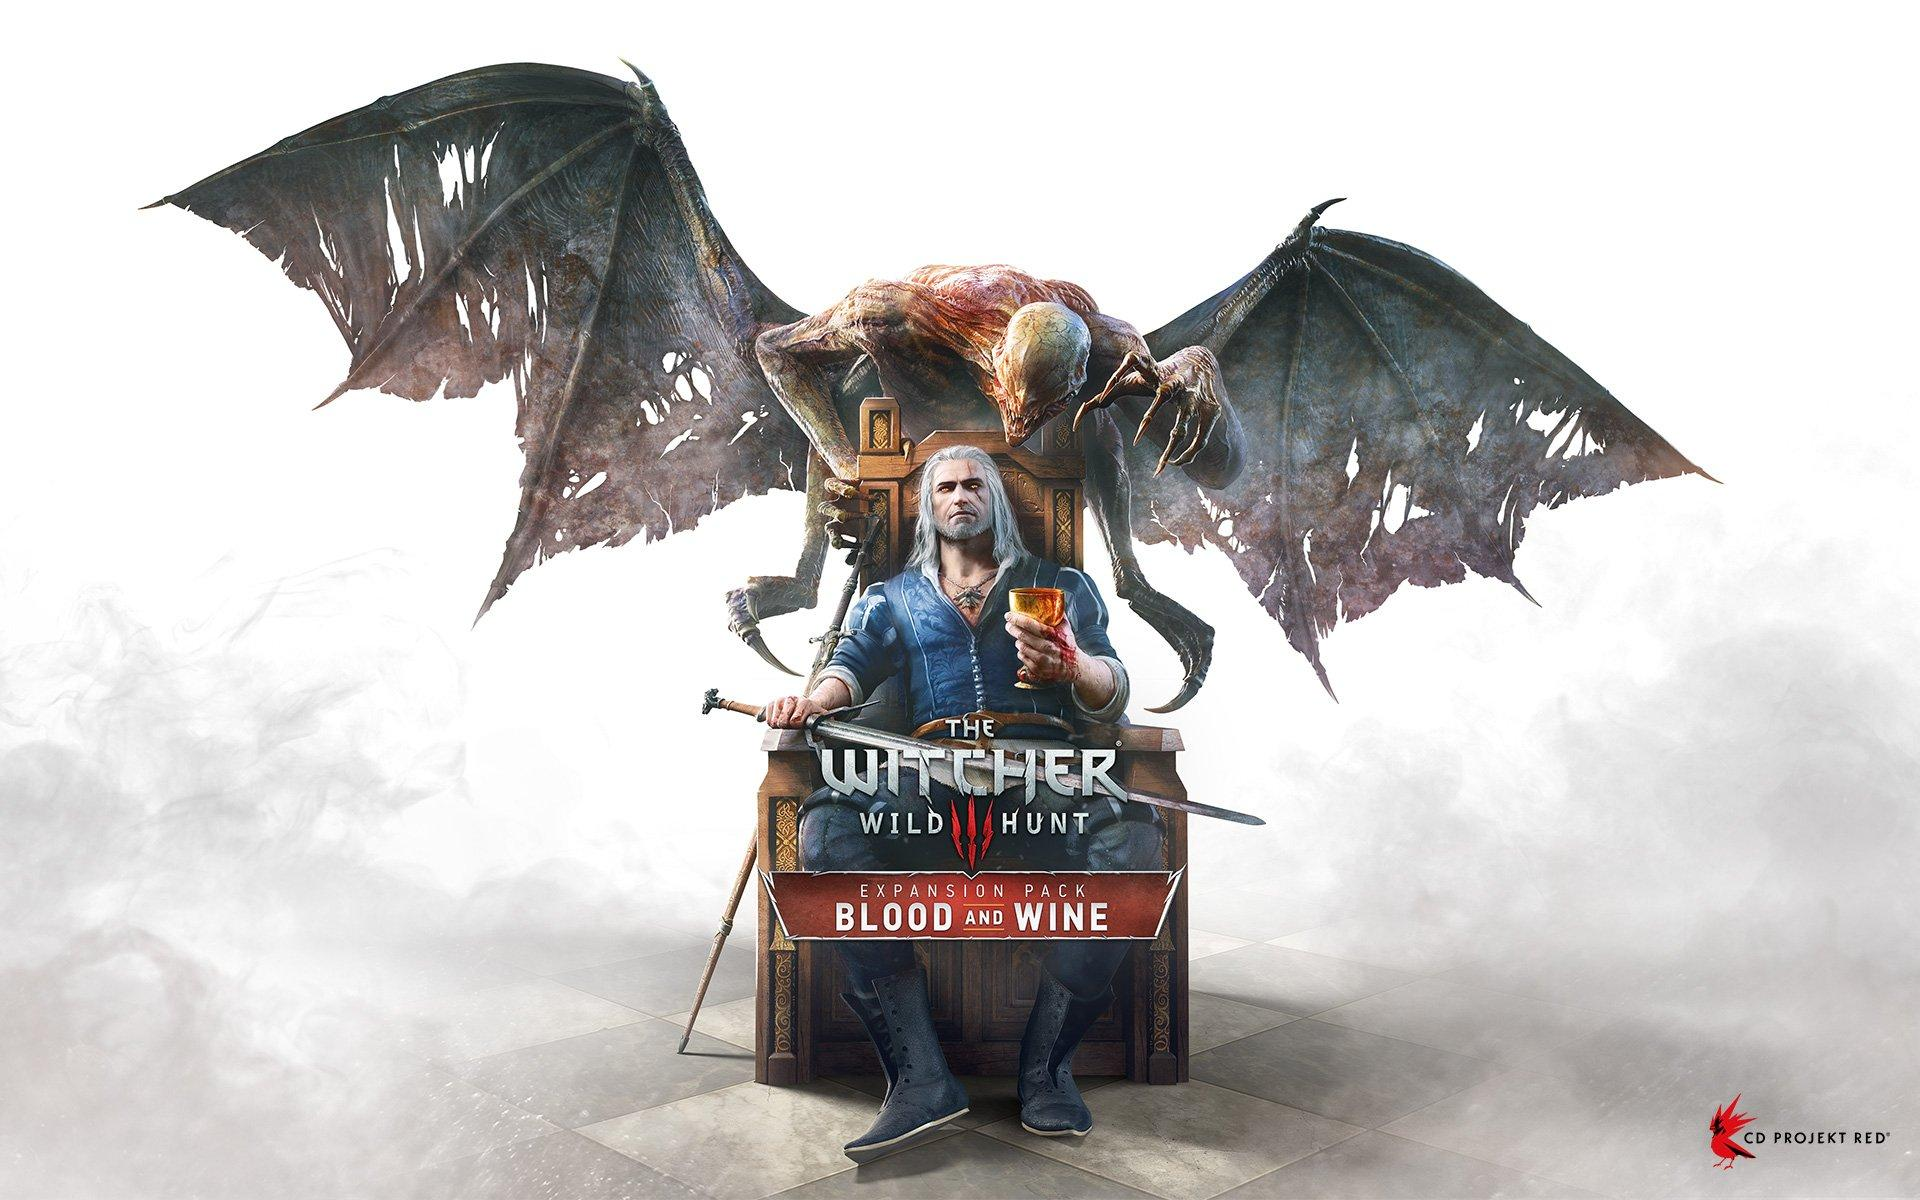 The-Witcher-3-Blood-and-Wine-cover-art.1